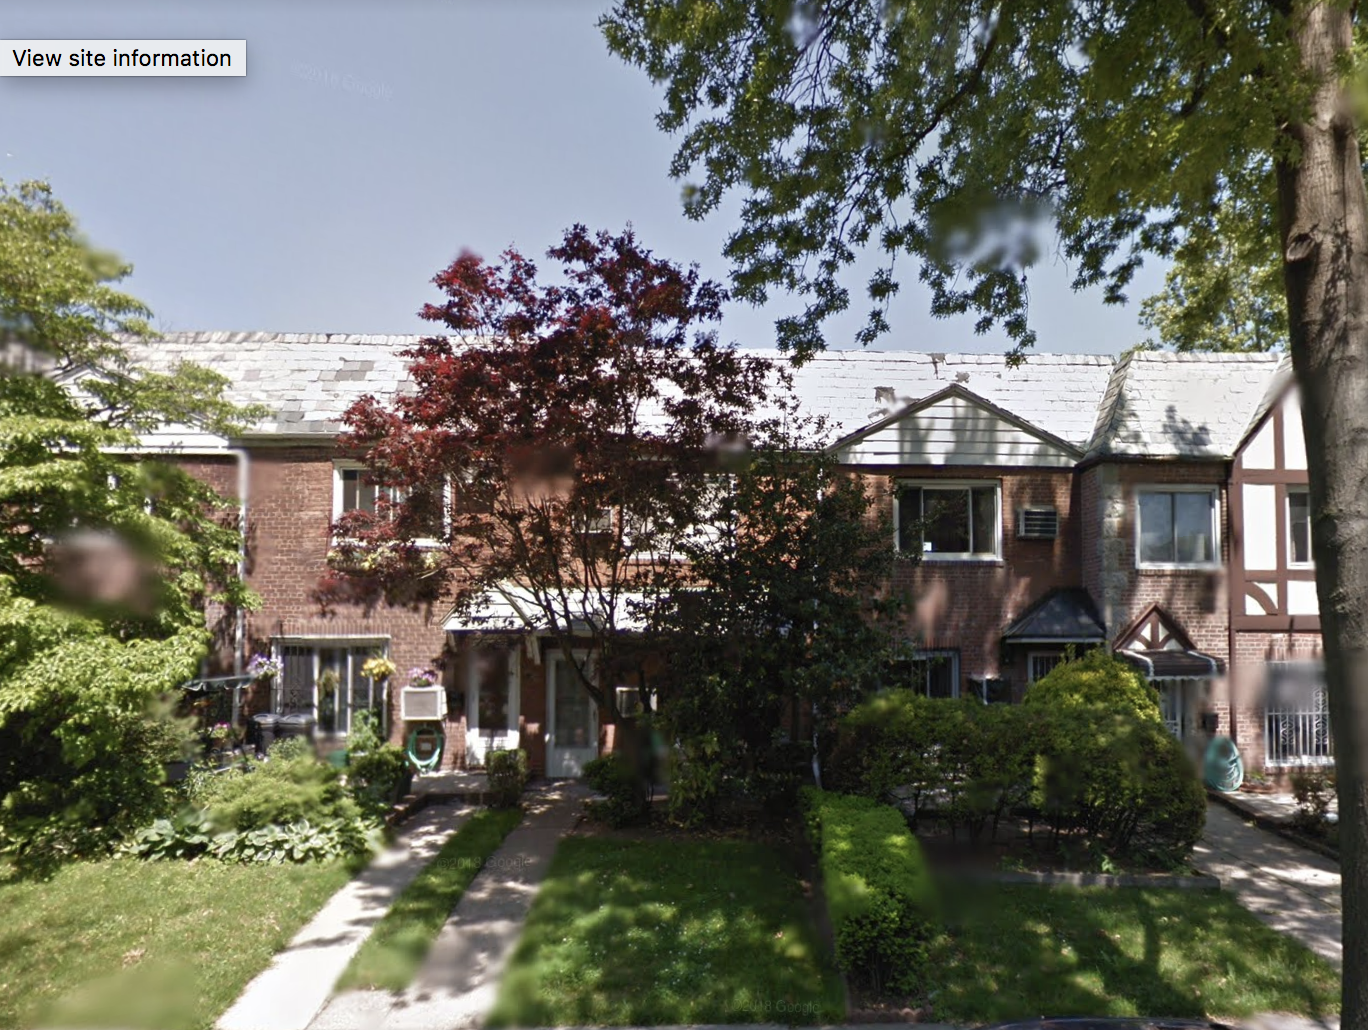 A fatal fire occurred at 148-40 60th Ave. in Flushing on Thursday. Photo via Google Maps.